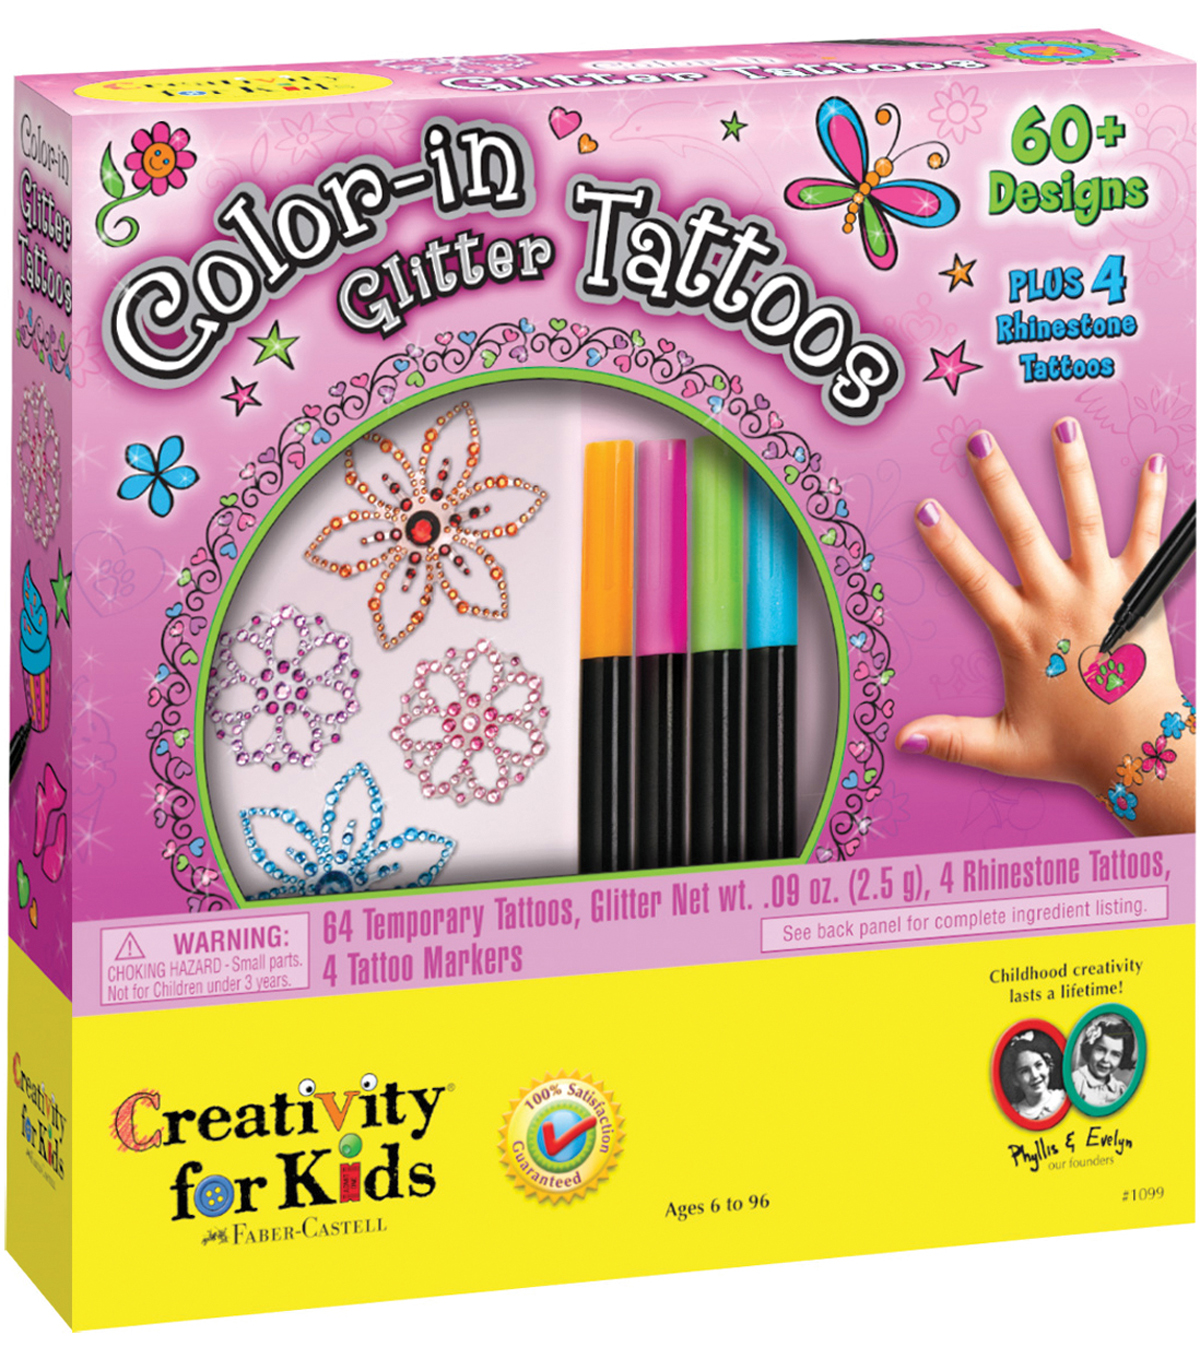 Creativity For Kids Color-In Glitter Tattoos Kit